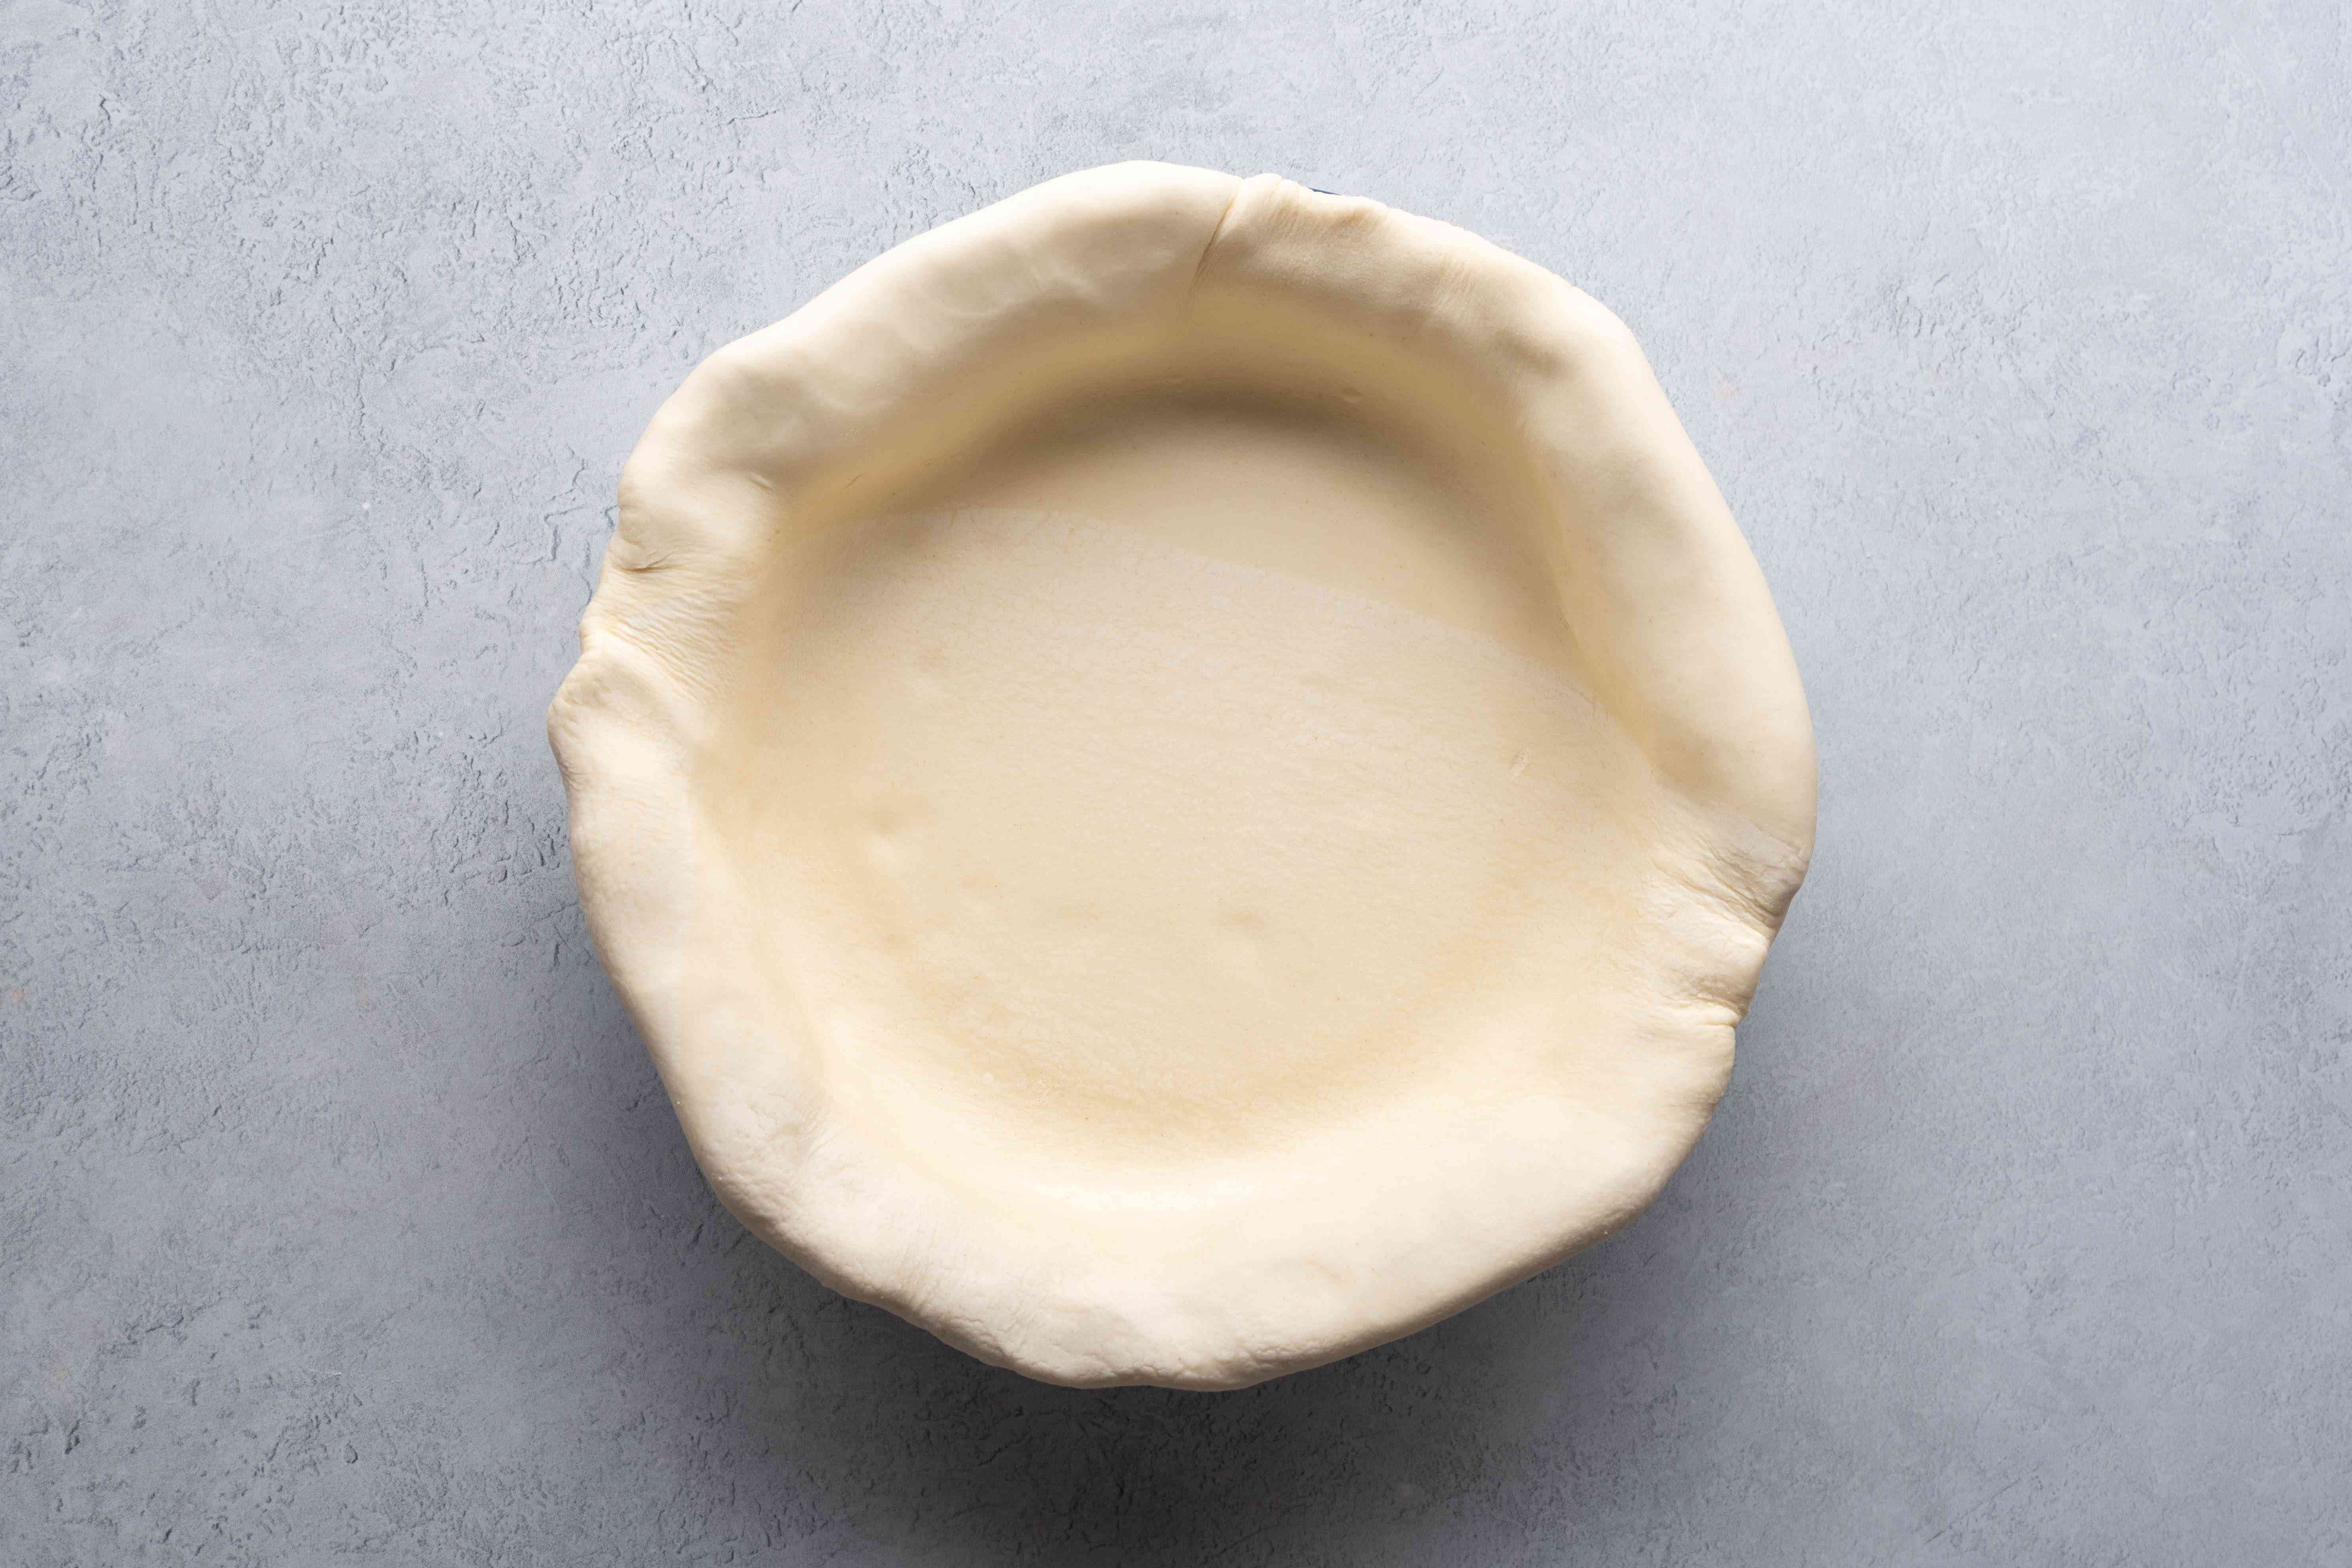 Fold over the sides to fit the tart pan and create an edge